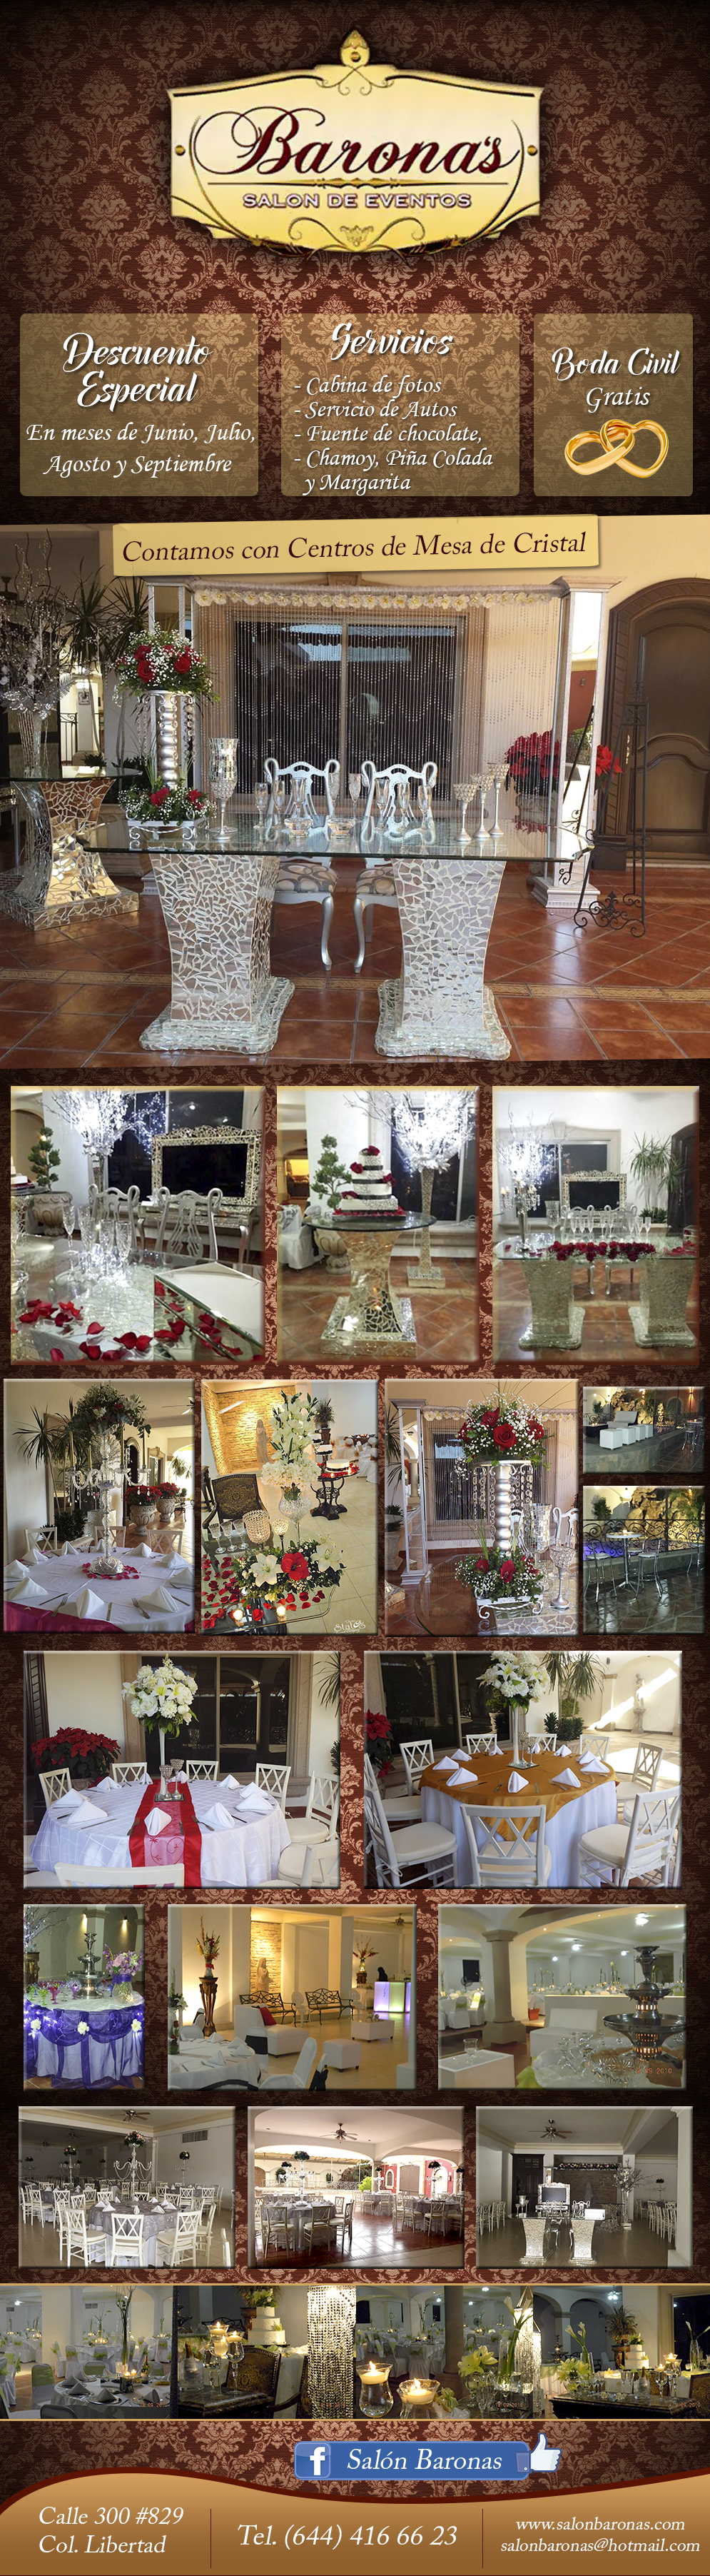 Baronas Salon de eventos-- Bautizos - Bodas - XV A�os - Baby Shower - Despedidas - Local de Eventos